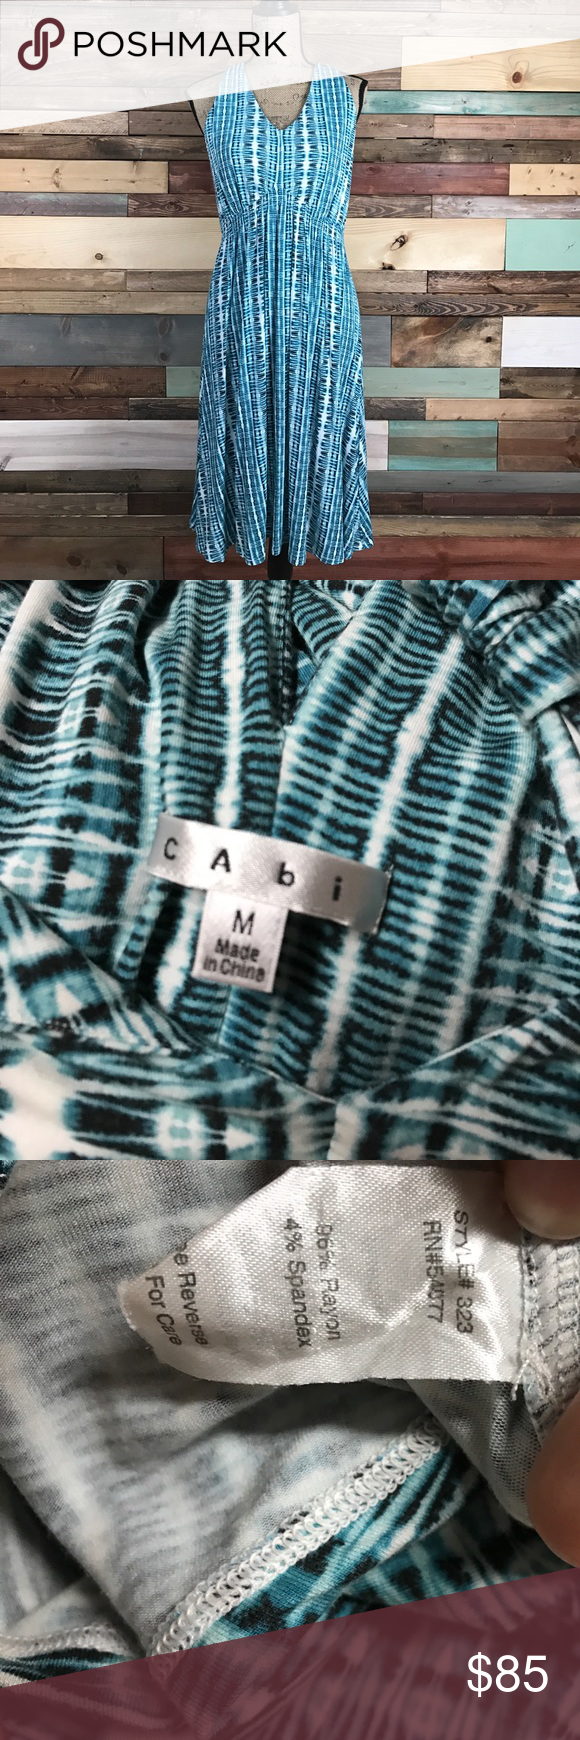 """CAbi Halter Style Teal Tye Dye Pattern Midi Dress CAbi Halter Style Teal Tye Dye Pattern Midi Dress - Medium - Super Soft!!! // Bust: 19"""" // Waist: 15"""" laying flat // Length: 42"""" // Bundle your likes and make an offer for best deals @woodsnap! CAbi Dresses Midi"""